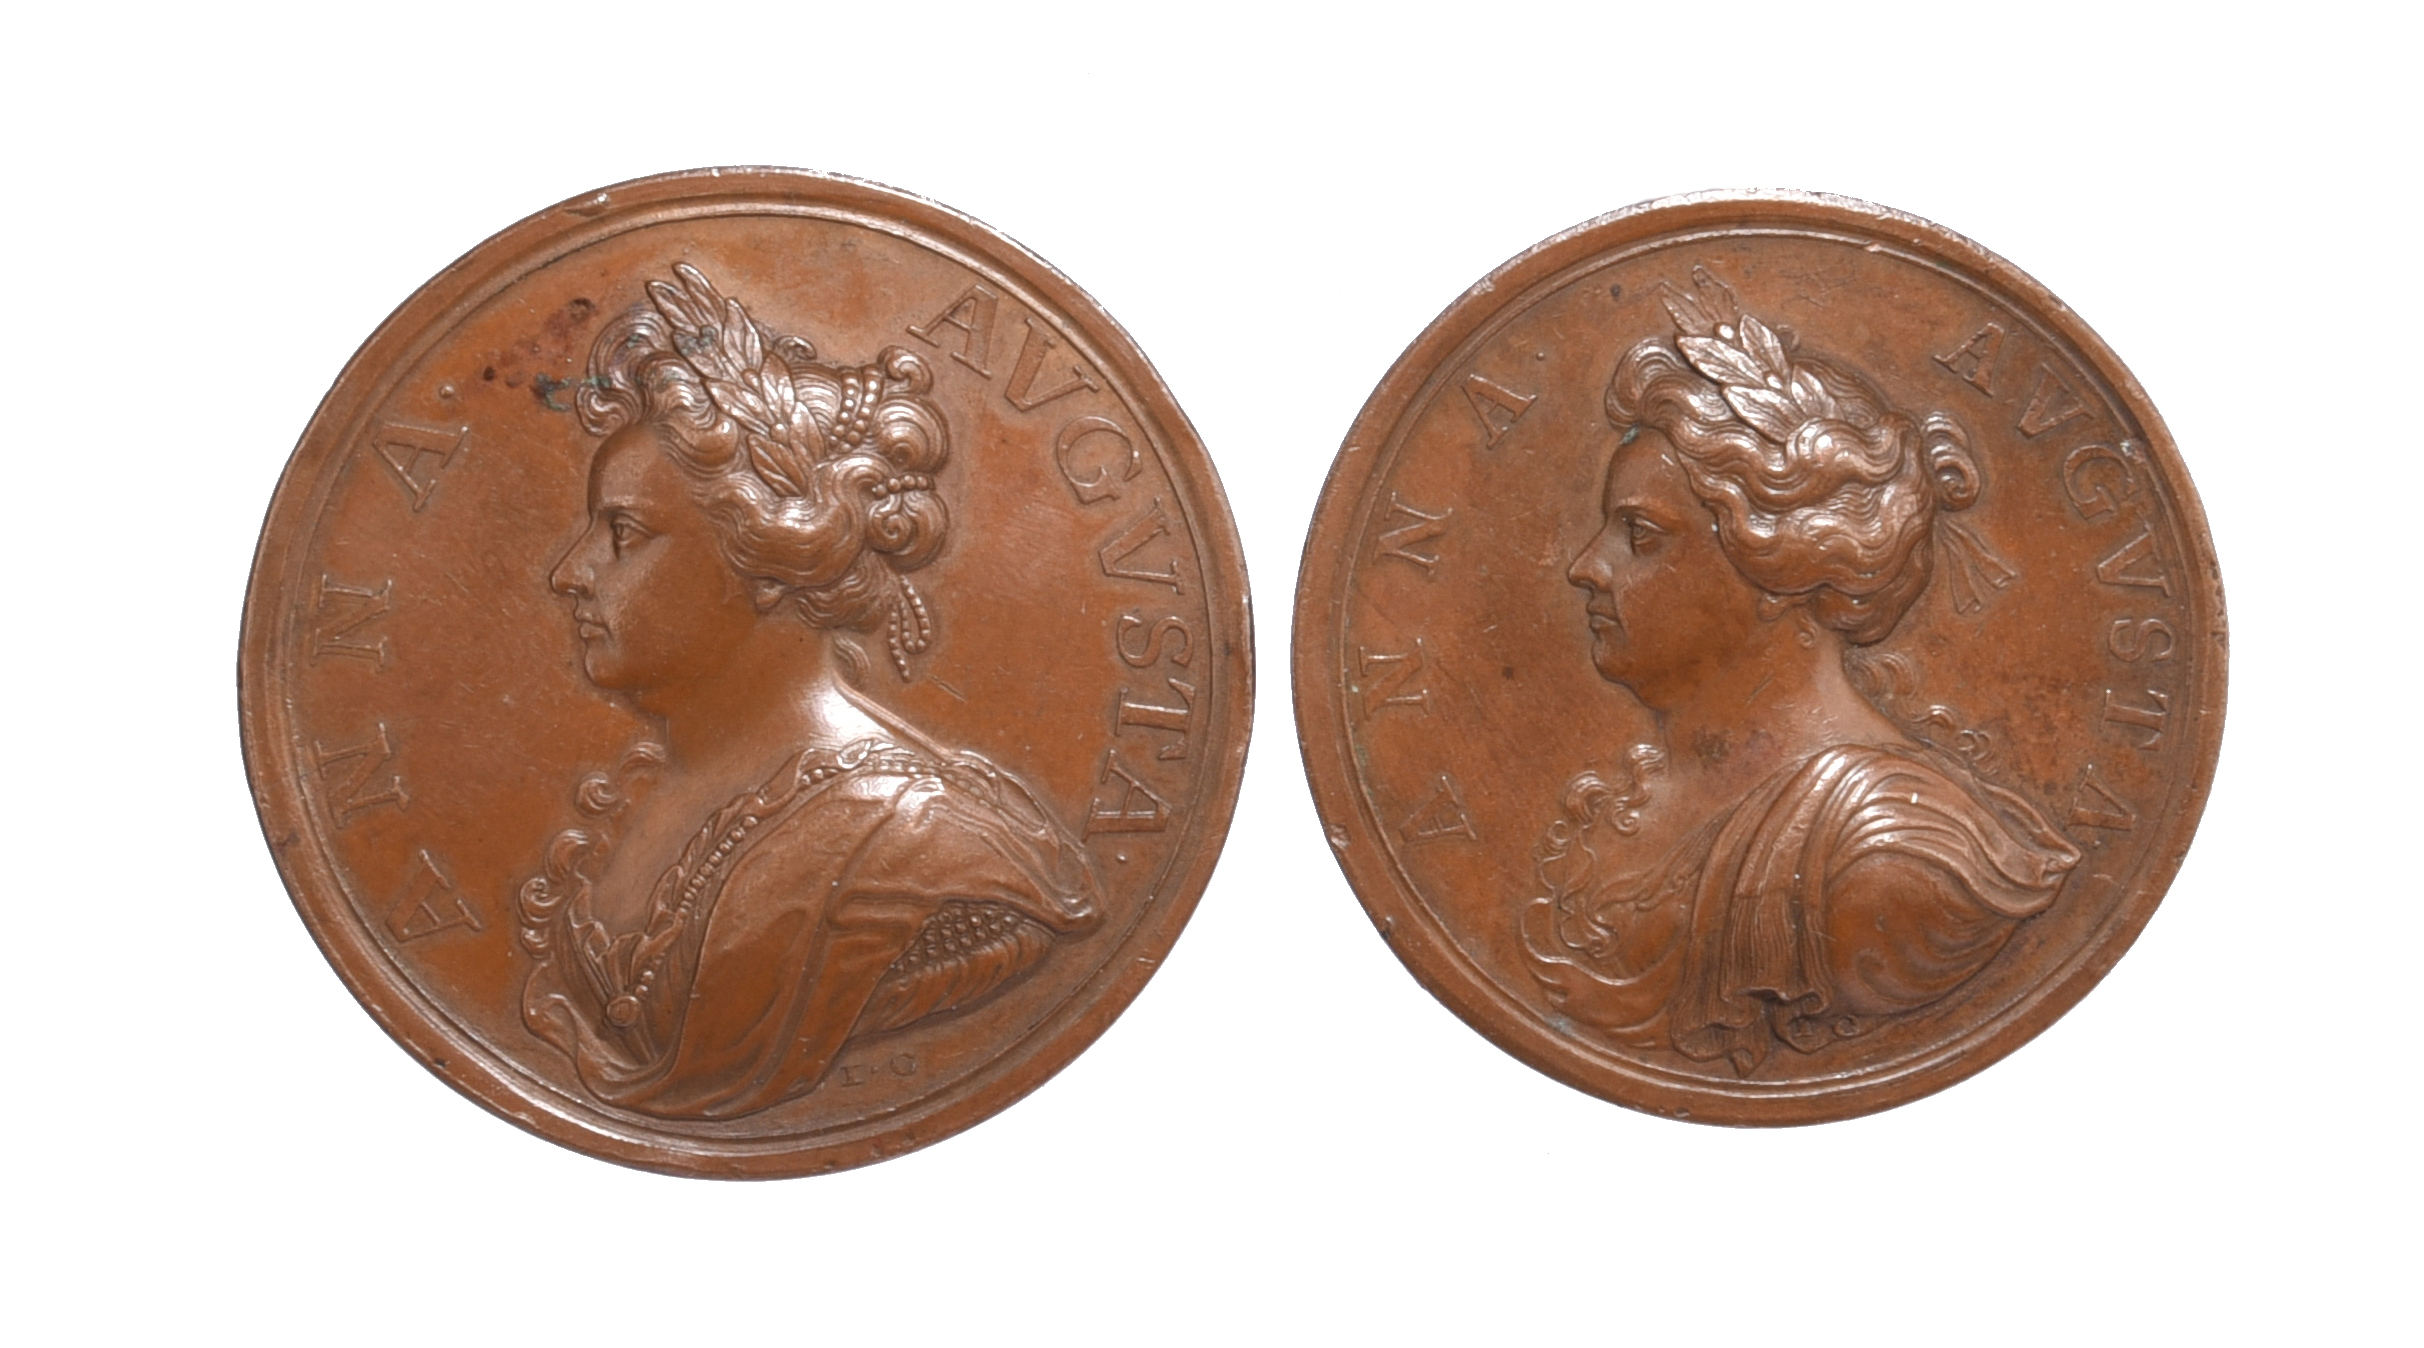 Anne (1702-14): War of the Spanish Succession, two medals: Douay Taken 1710, AE, 48mm, bust left, '